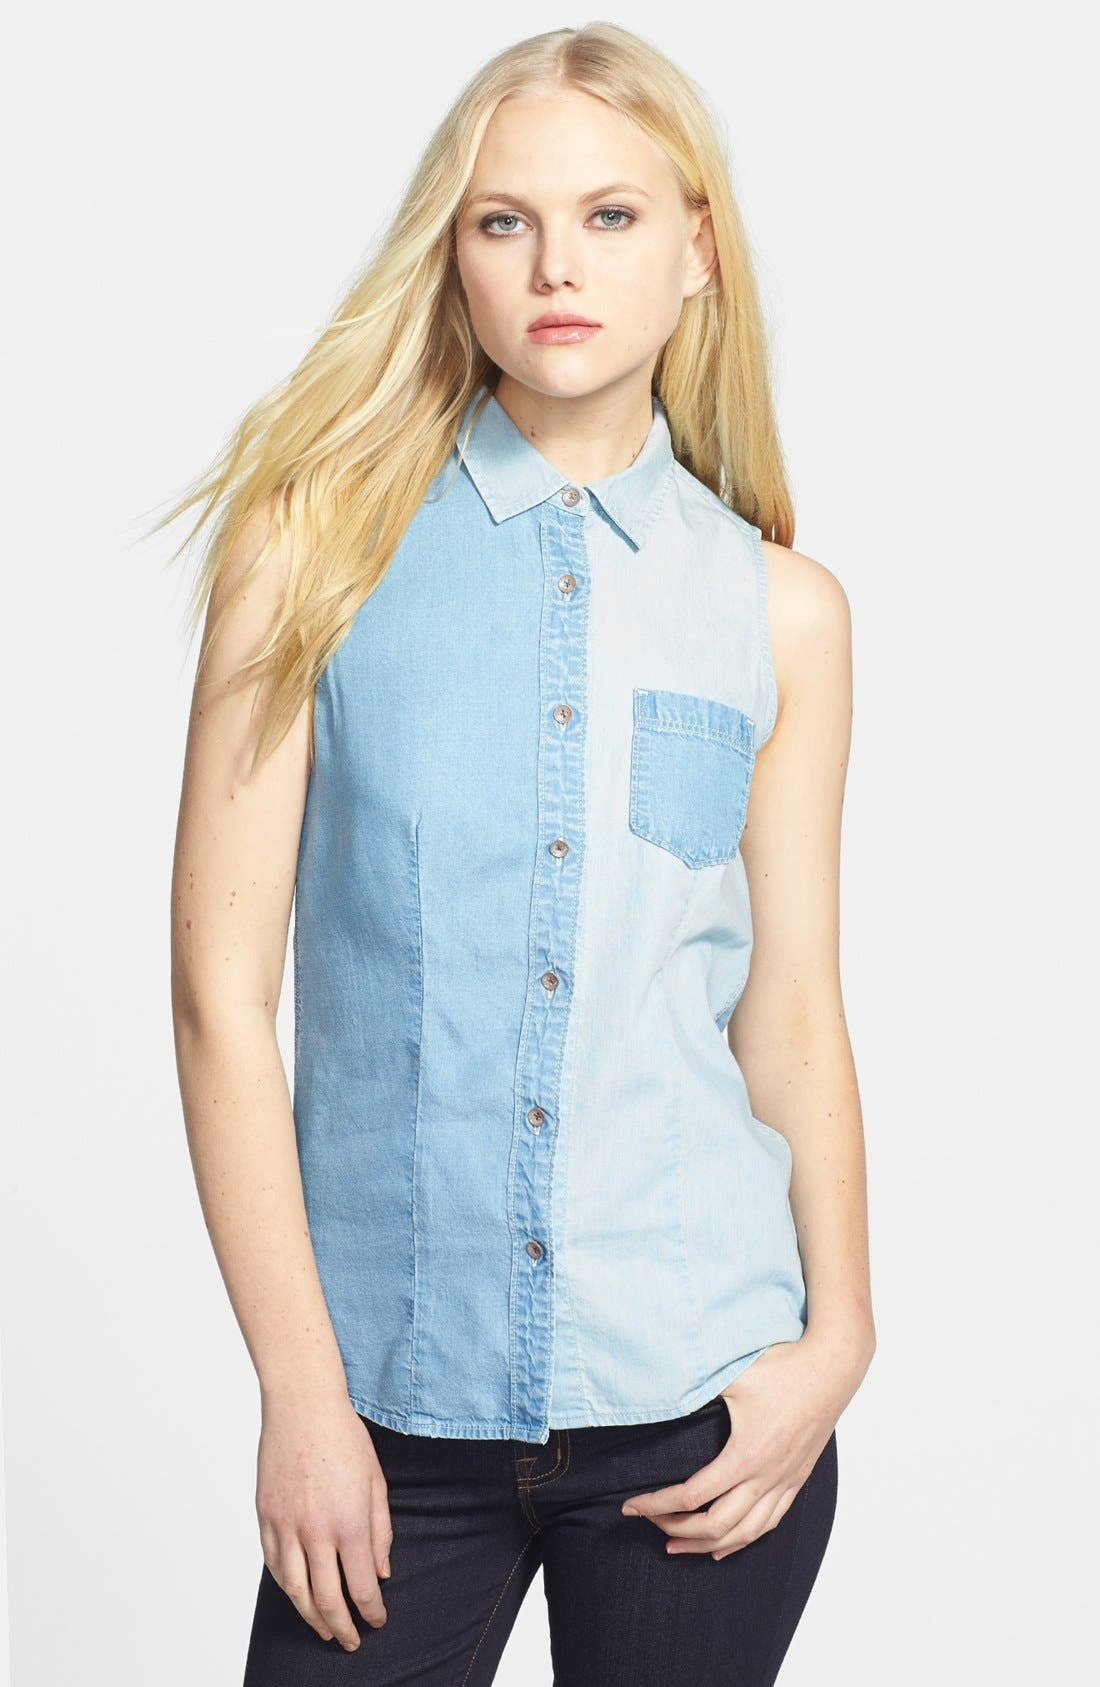 Alternate Image 1 Selected - Two by Vince Camuto 'Bleached Boy' Sleeveless Denim Shirt